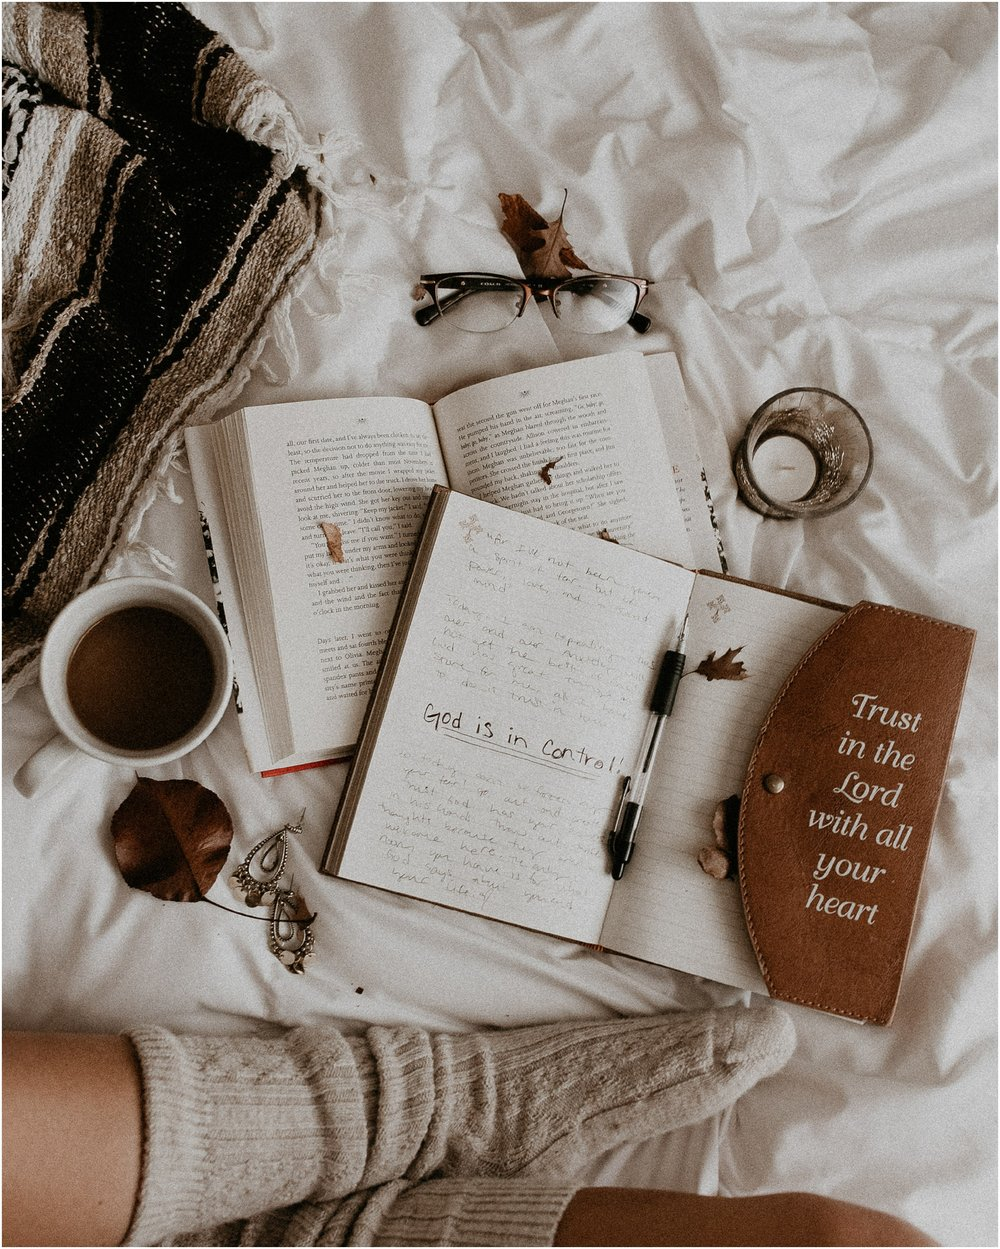 Boise Boudoir Photographer Boise Senior Photographer Makayla Madden Photography Cozy Winter Vibes Journaling Bookworm Reading Trust in the Lord